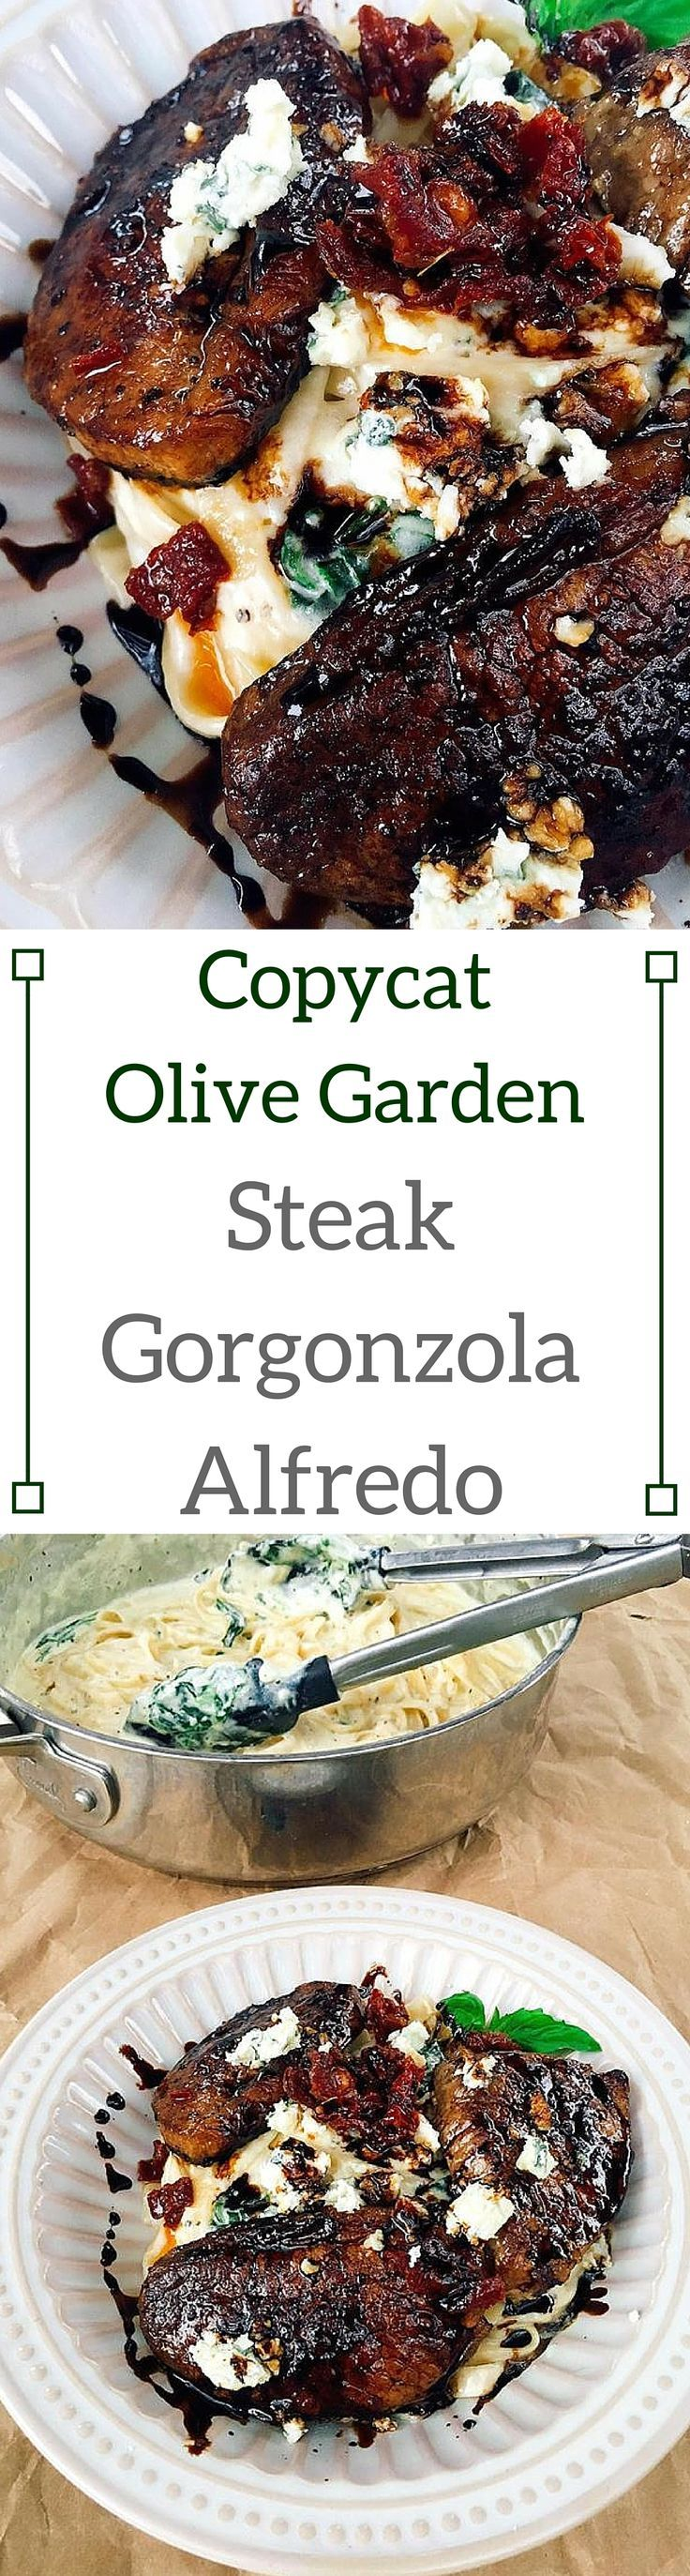 Best 25 Olive Garden Recipes Ideas On Pinterest Olive Restaurant Olive Garden Copycat